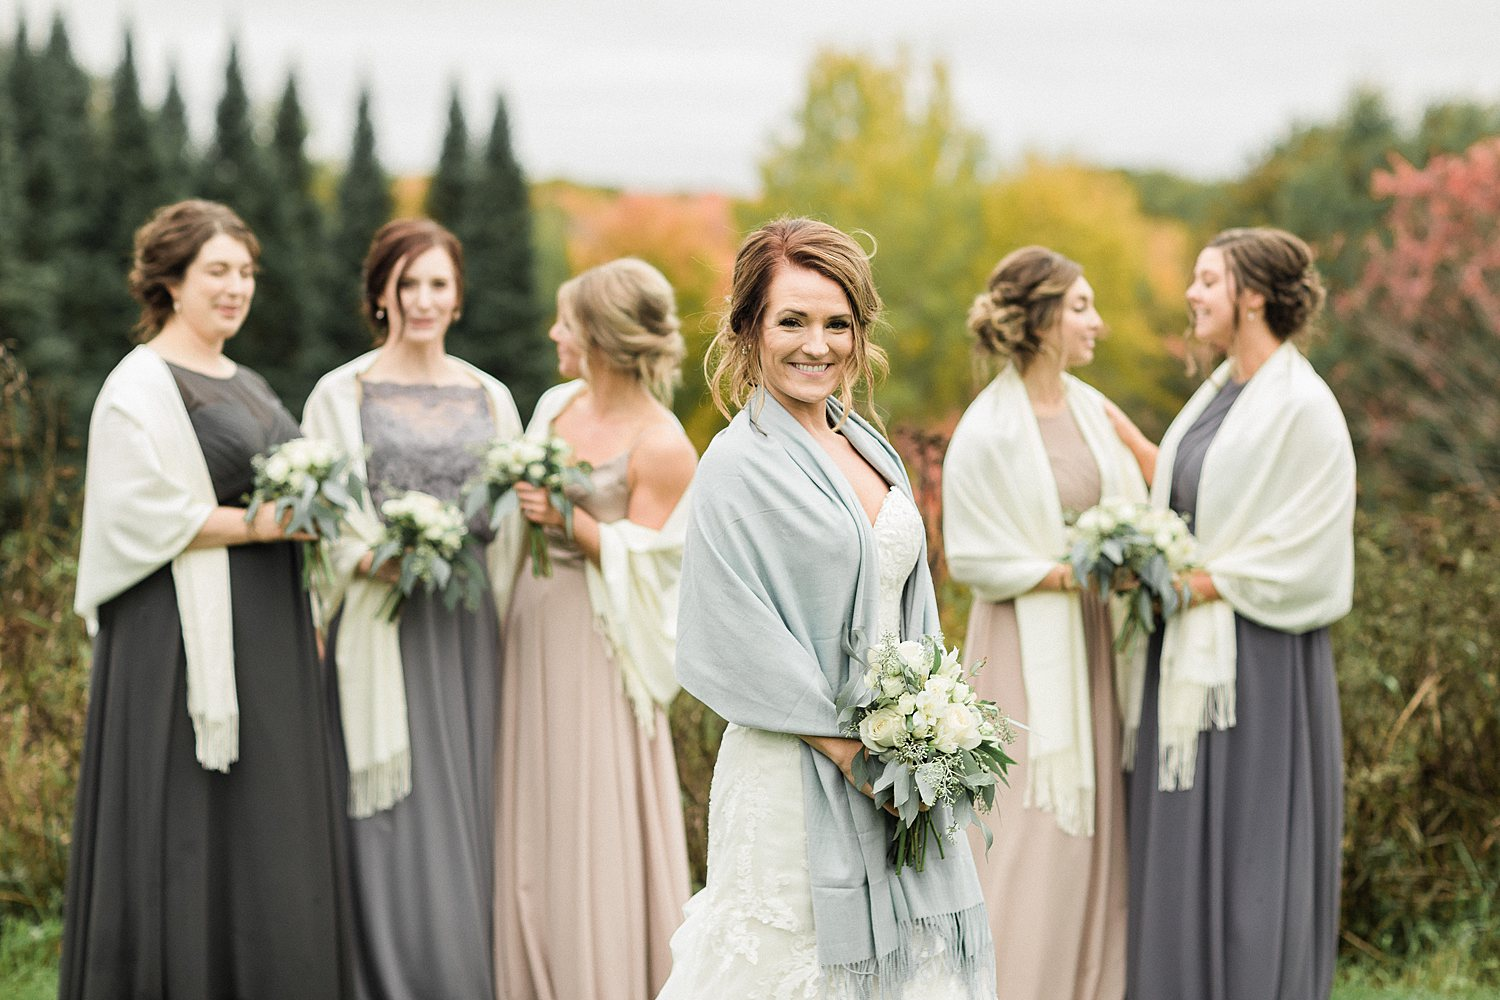 North_Central_Wisconsin_Event_Wedding_Venues_Fall_Weddings_The_Bailiwick_Venue_James-Stokes-Photography042.jpg